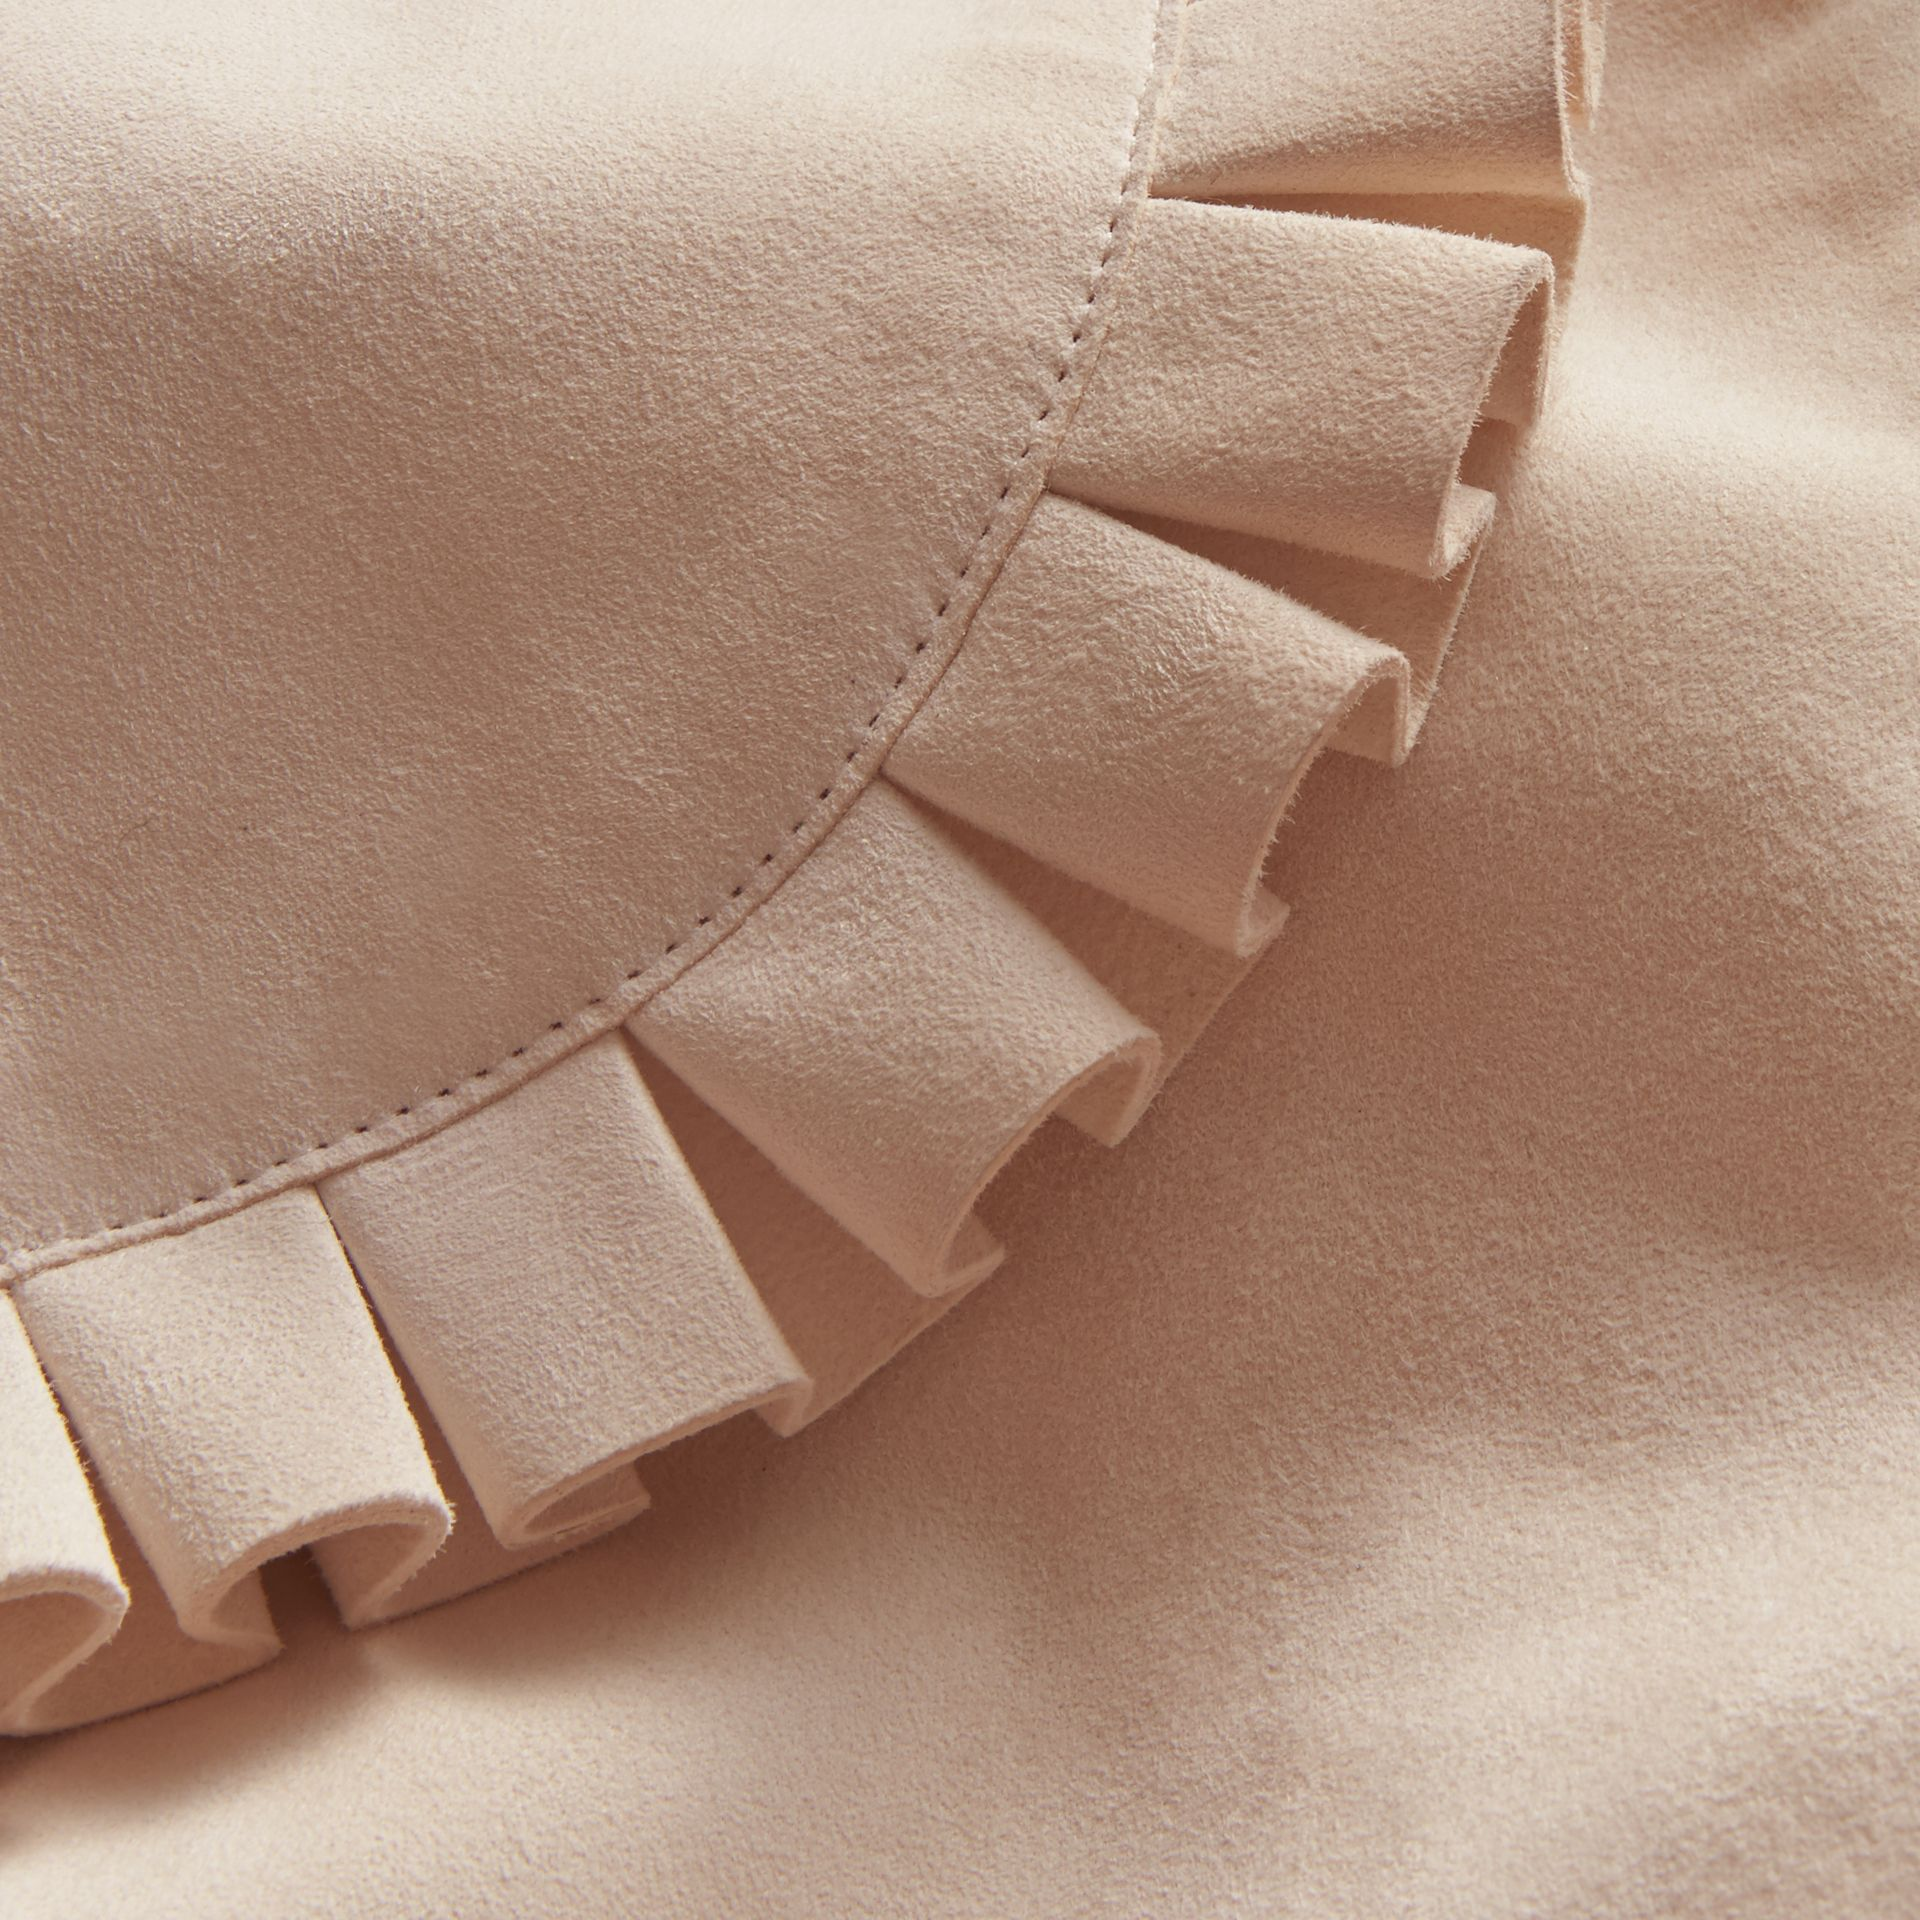 Ruffled Suede Cropped Cape in White - Women | Burberry - gallery image 1